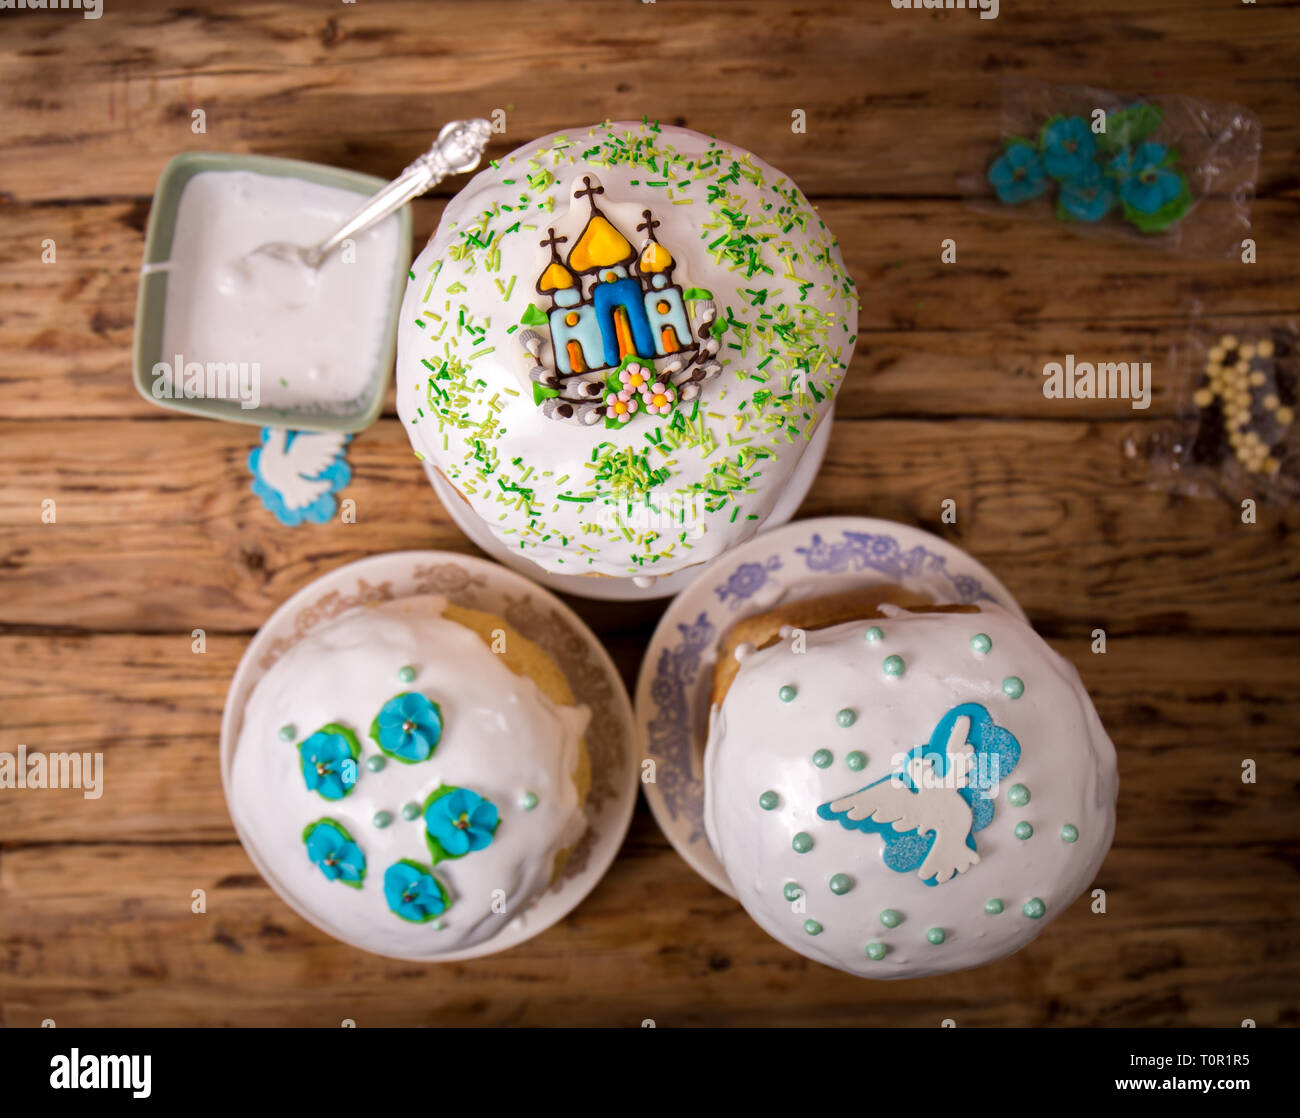 Decorating cakes with sprinkles - Stock Image